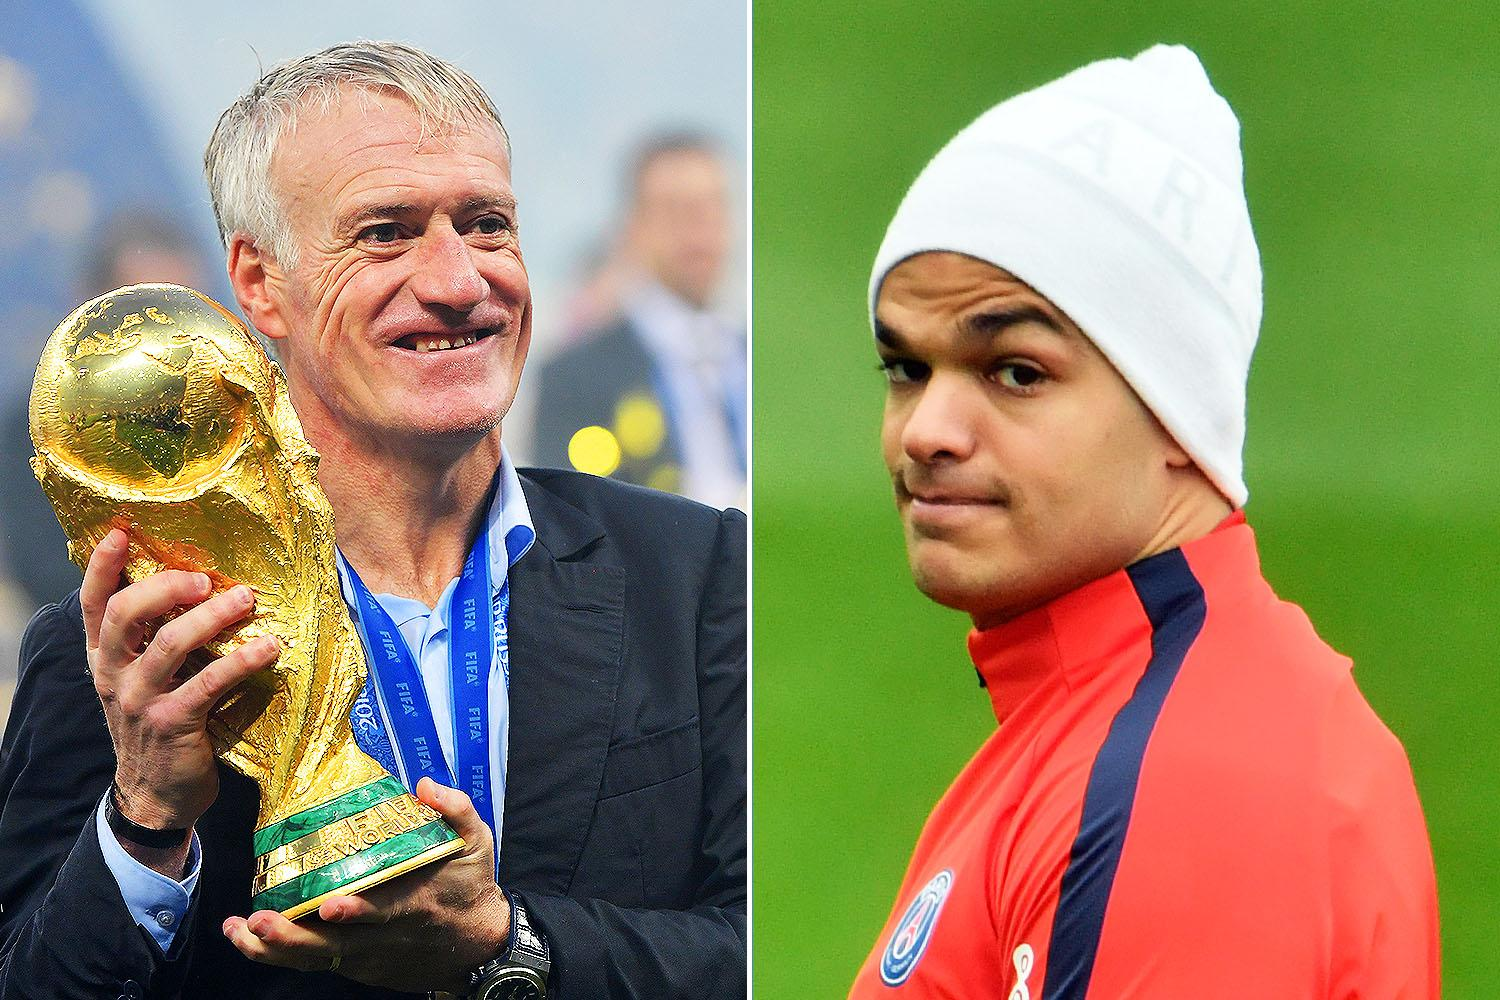 Hatem Ben Arfa calls for Didier Deschamps to quit as France manager     Hatem Ben Arfa calls for Didier Deschamps to quit as France manager after  World Cup glory